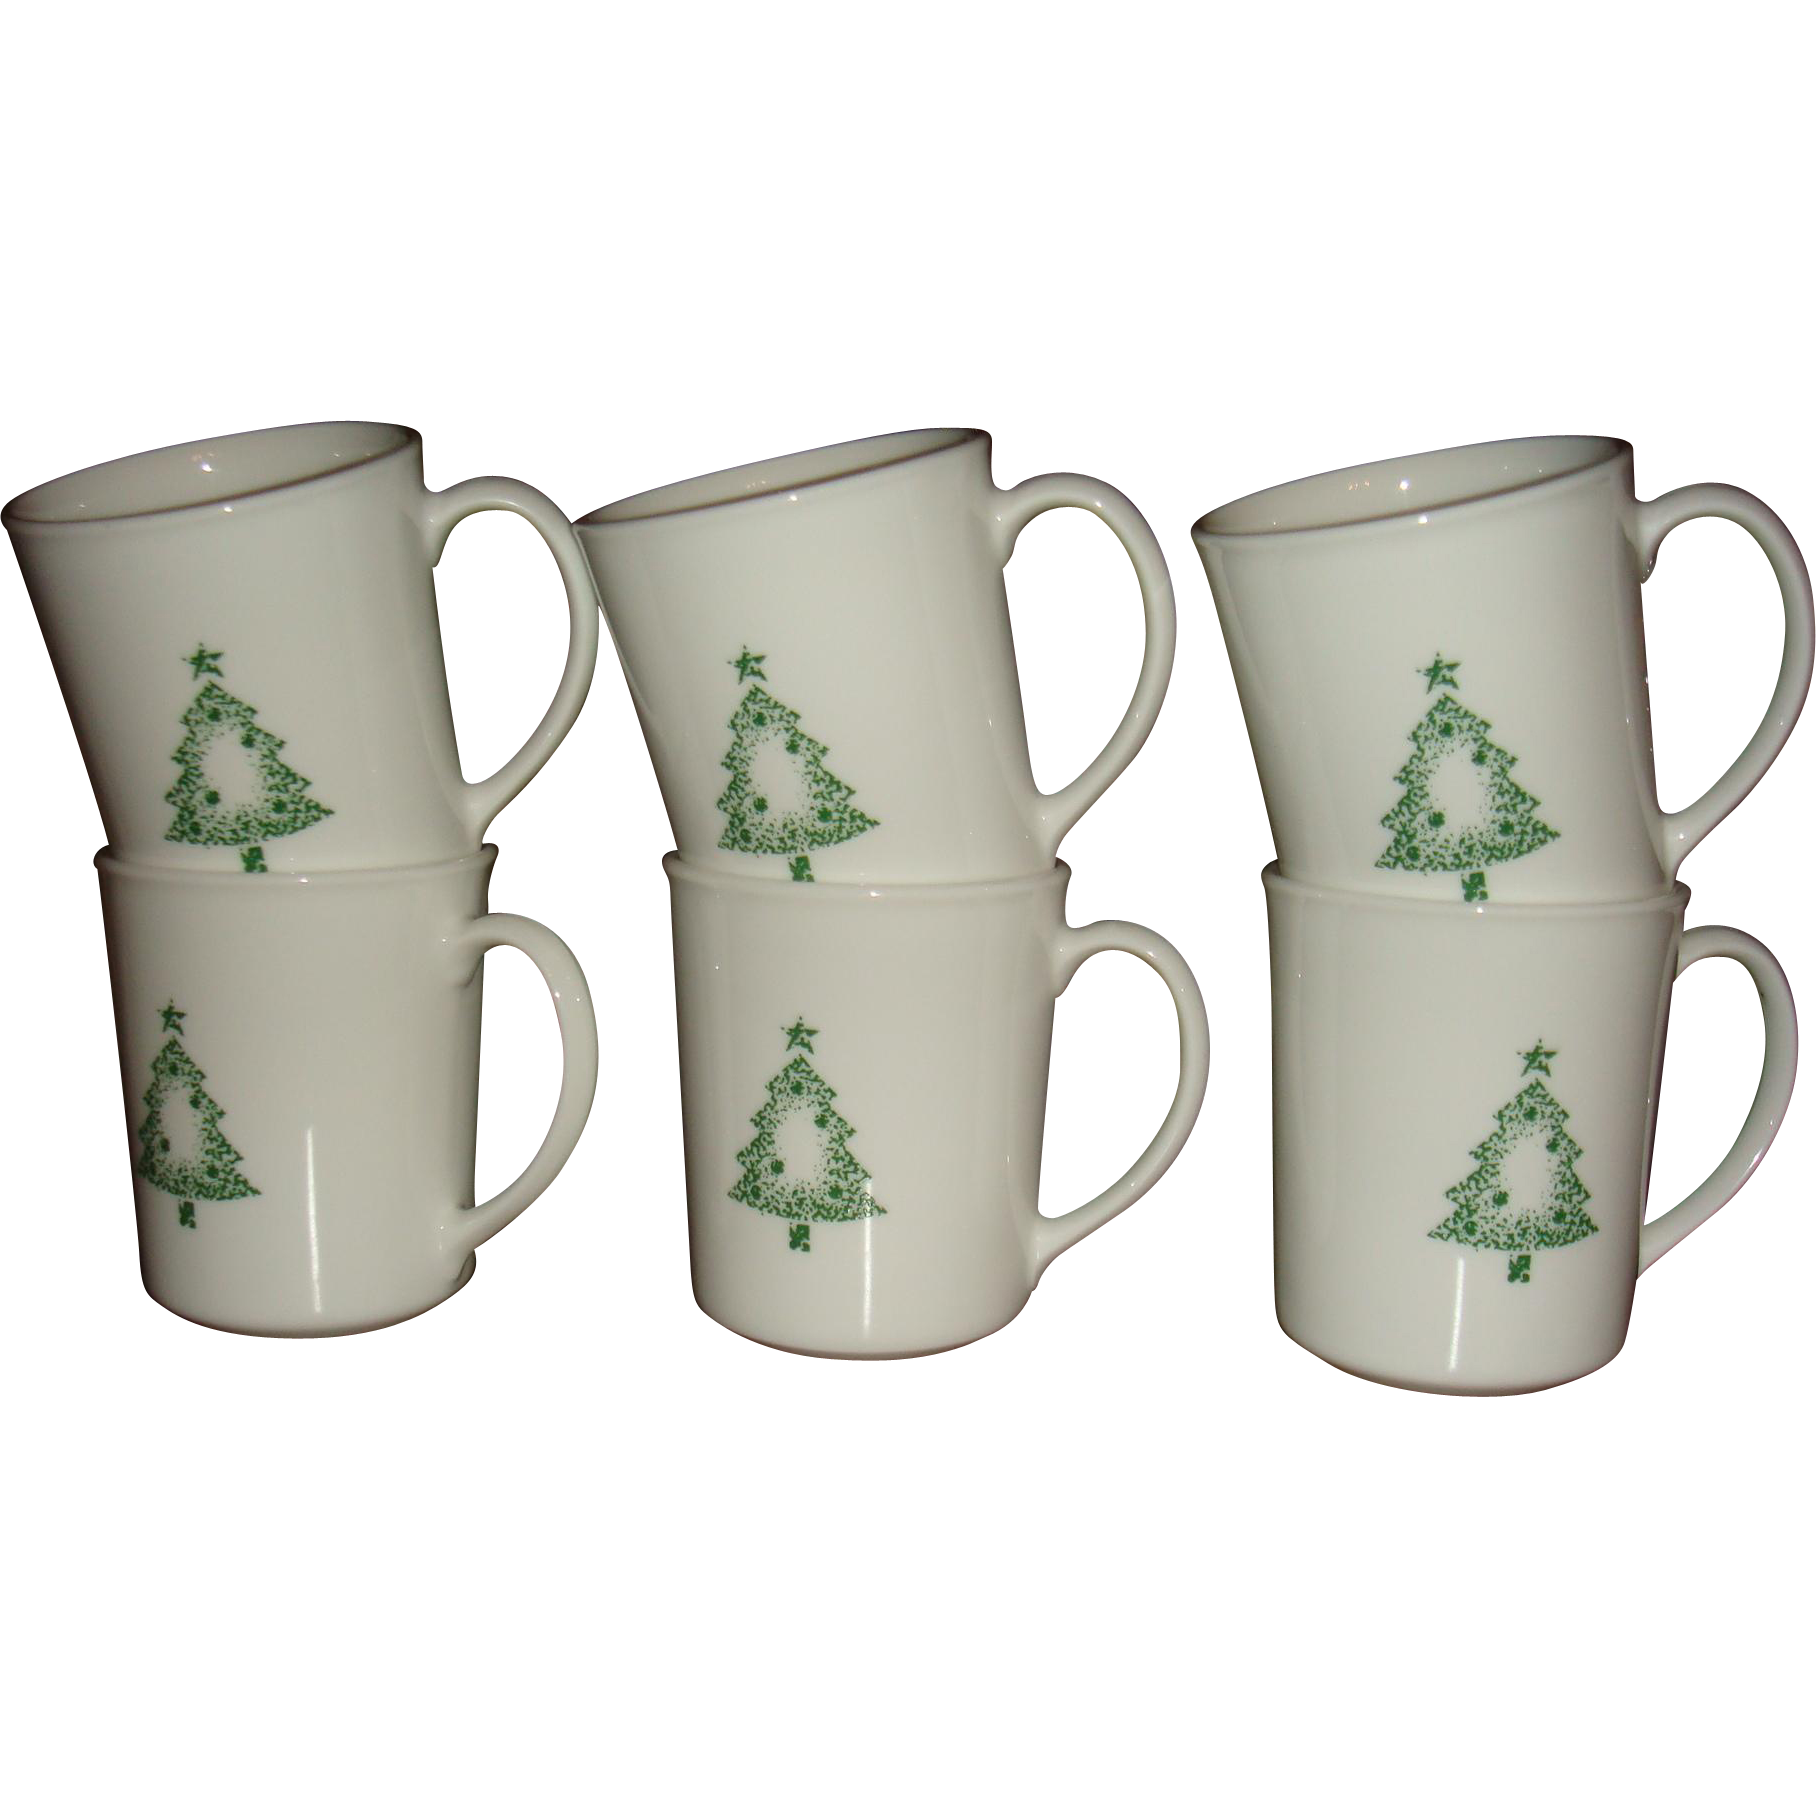 Set 0f 6 Corning USA Chrismtas Stencil Tree Mugs Llike New 27 + Years Old